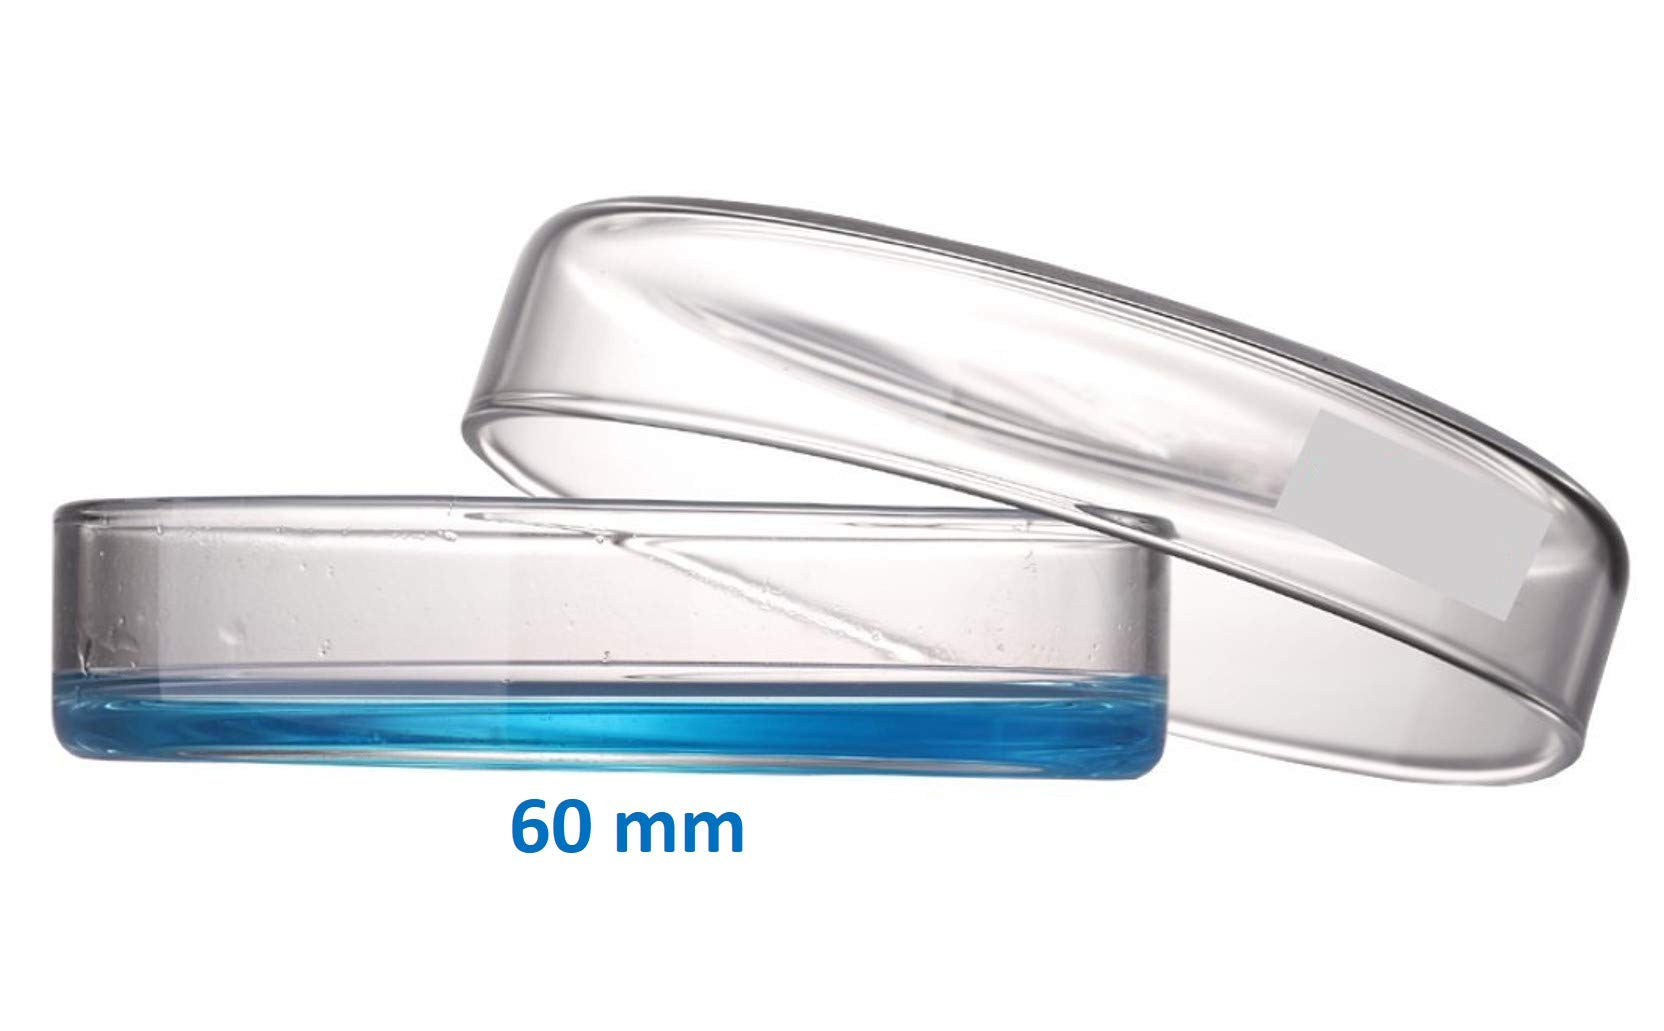 Microyn 60mm OD Glass Petri Dish with Lid, Tissue Culture Dish (Pack of 20) by Microyn